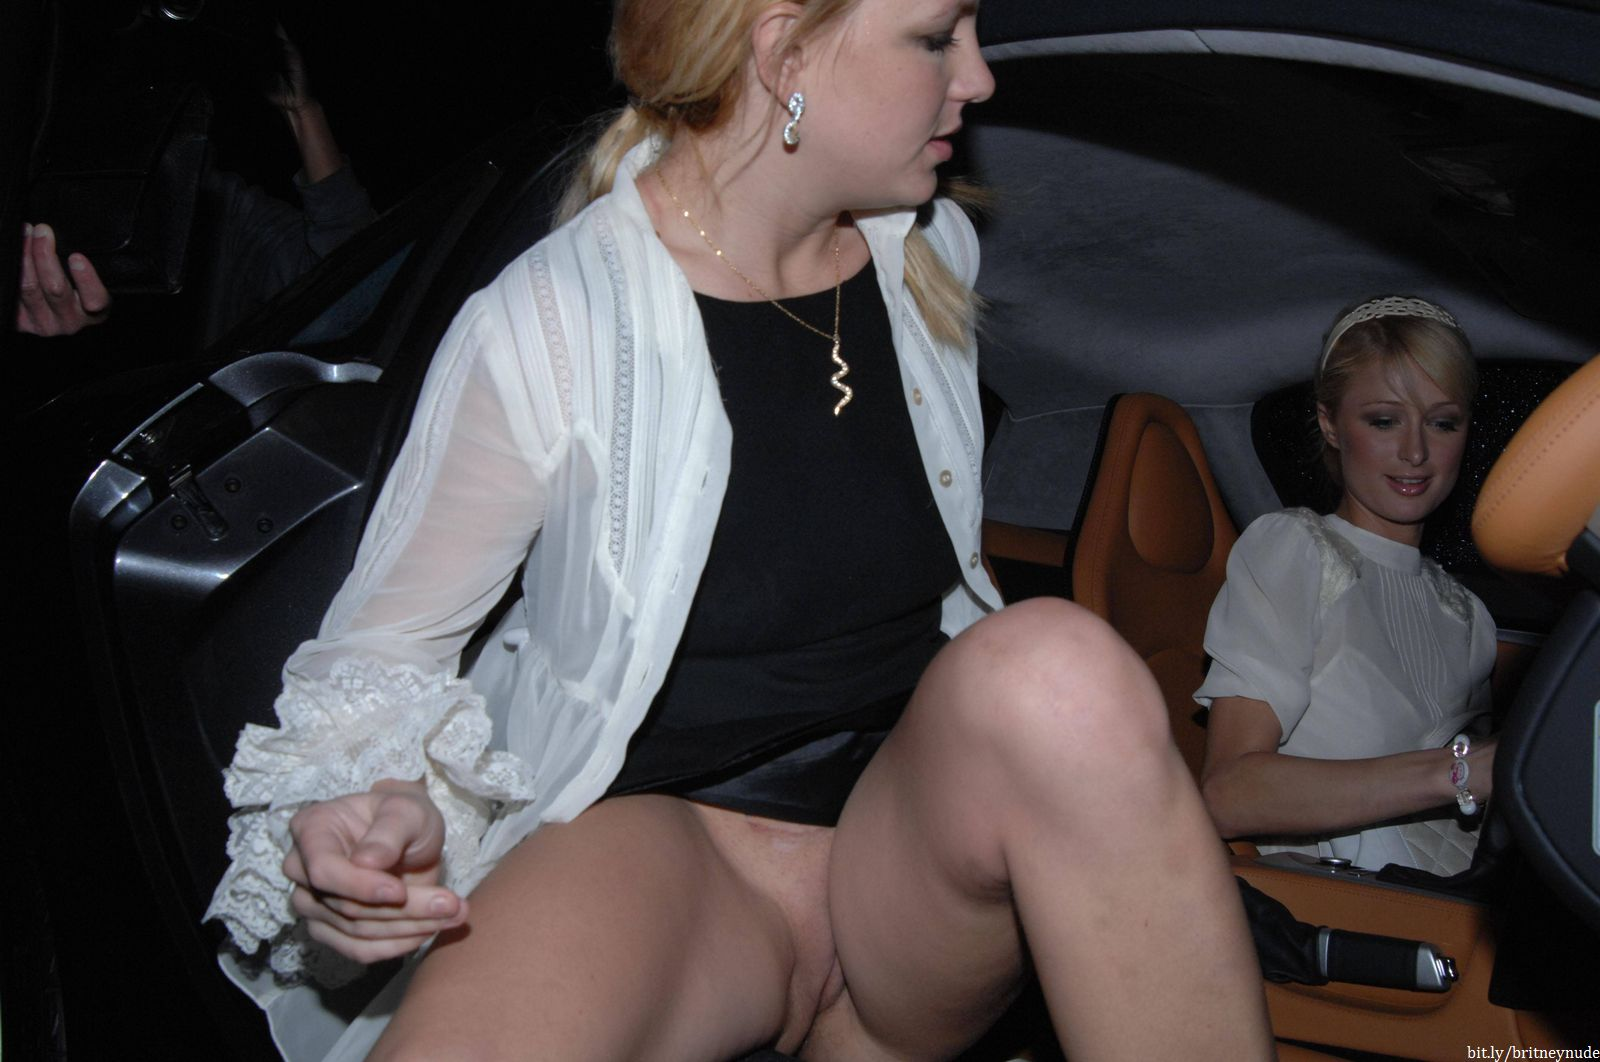 Miley cyrus upskirt pussy pic